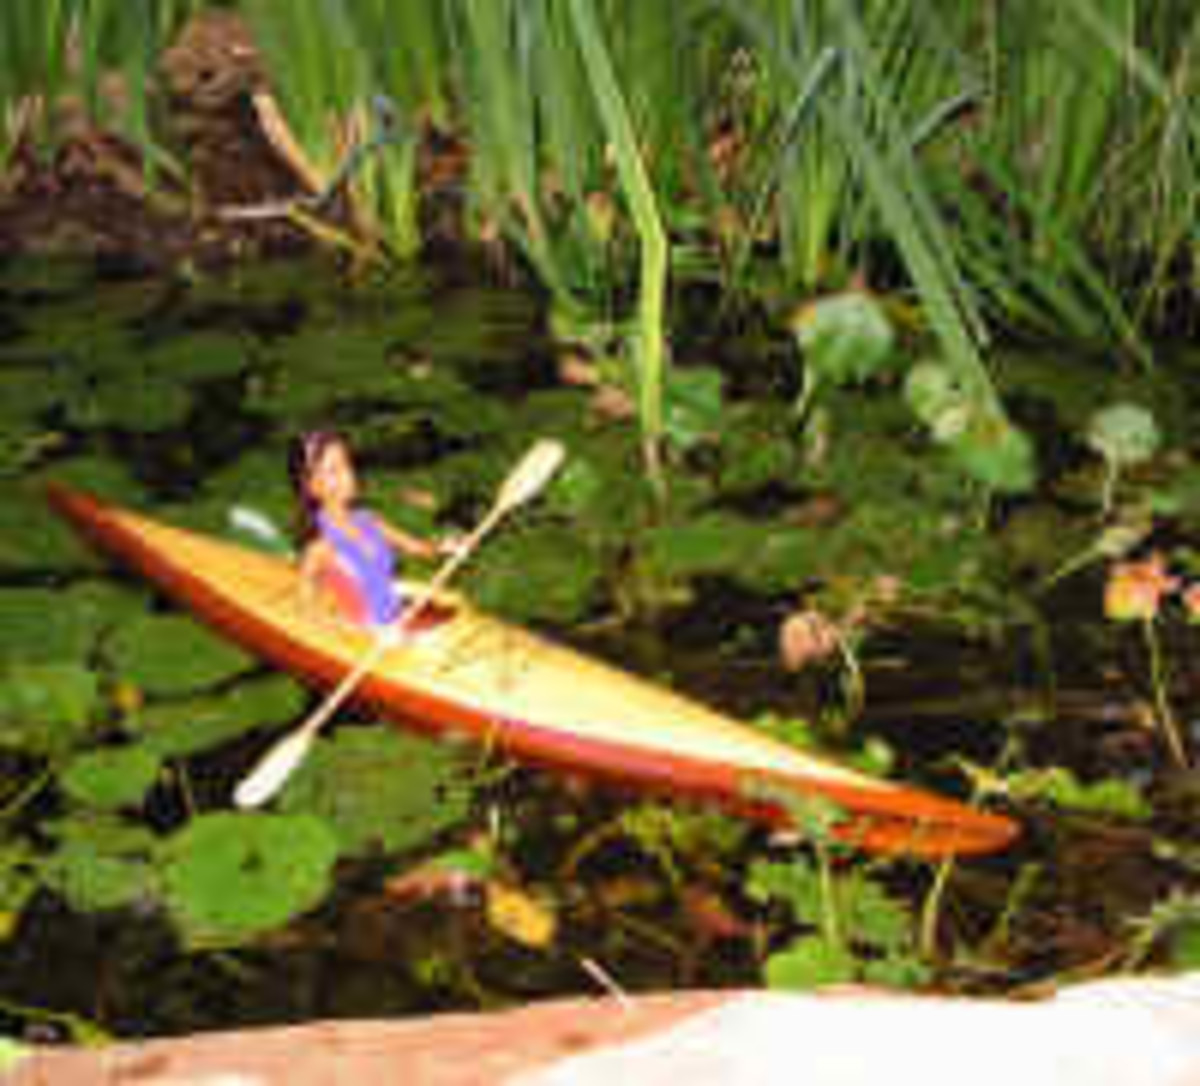 Barbie with outdoor sports - kayaking